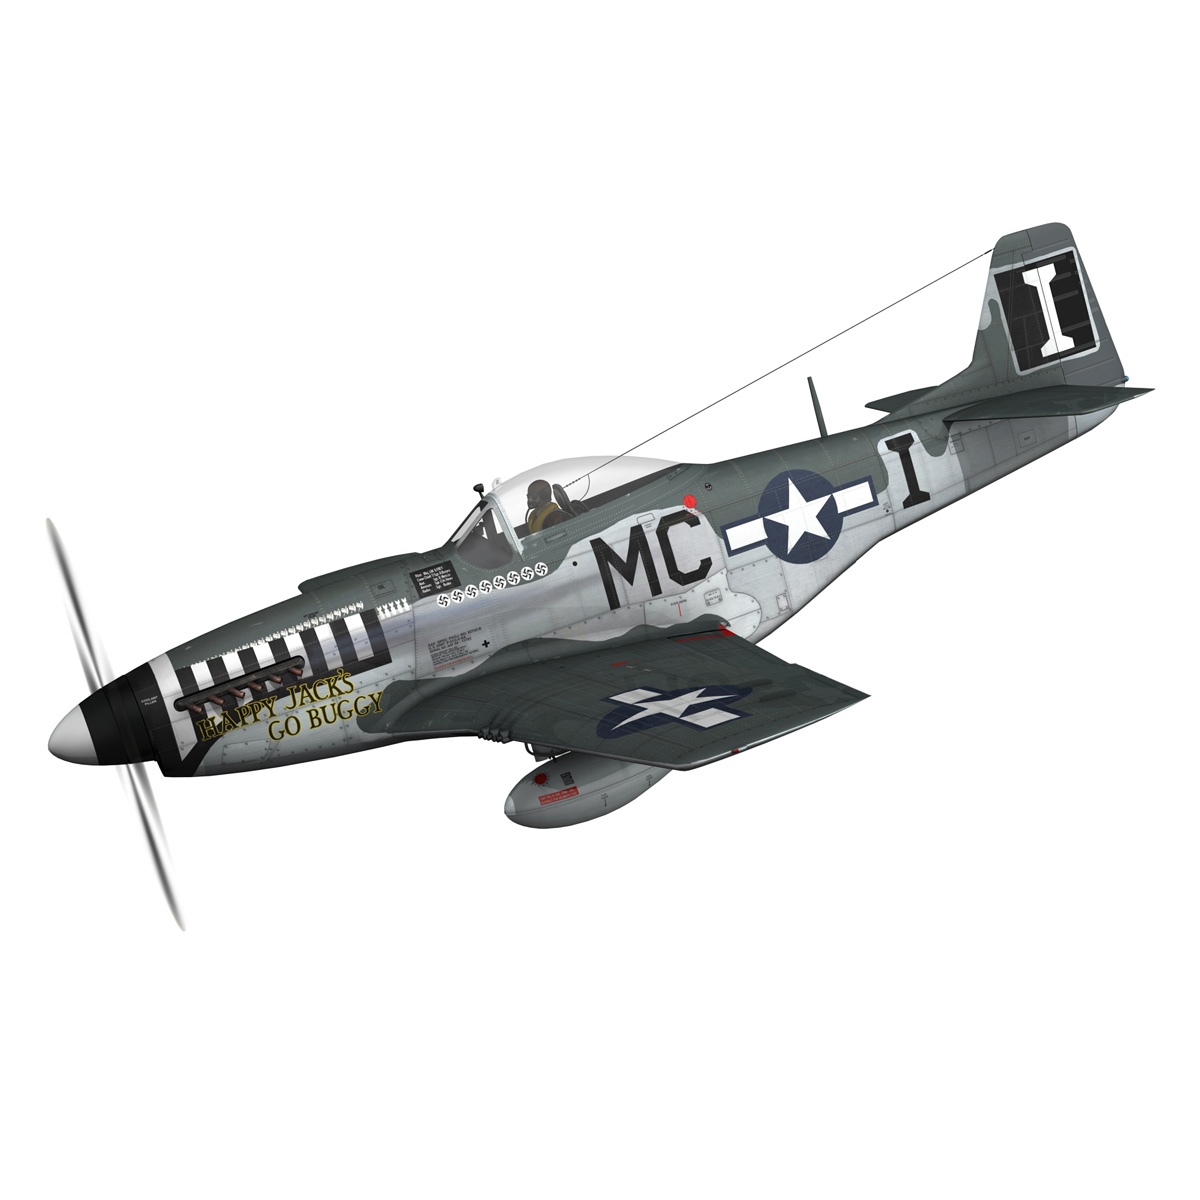 north american p-51 mustang – happy jacks go buggy 3d model fbx c4d lwo obj 280361